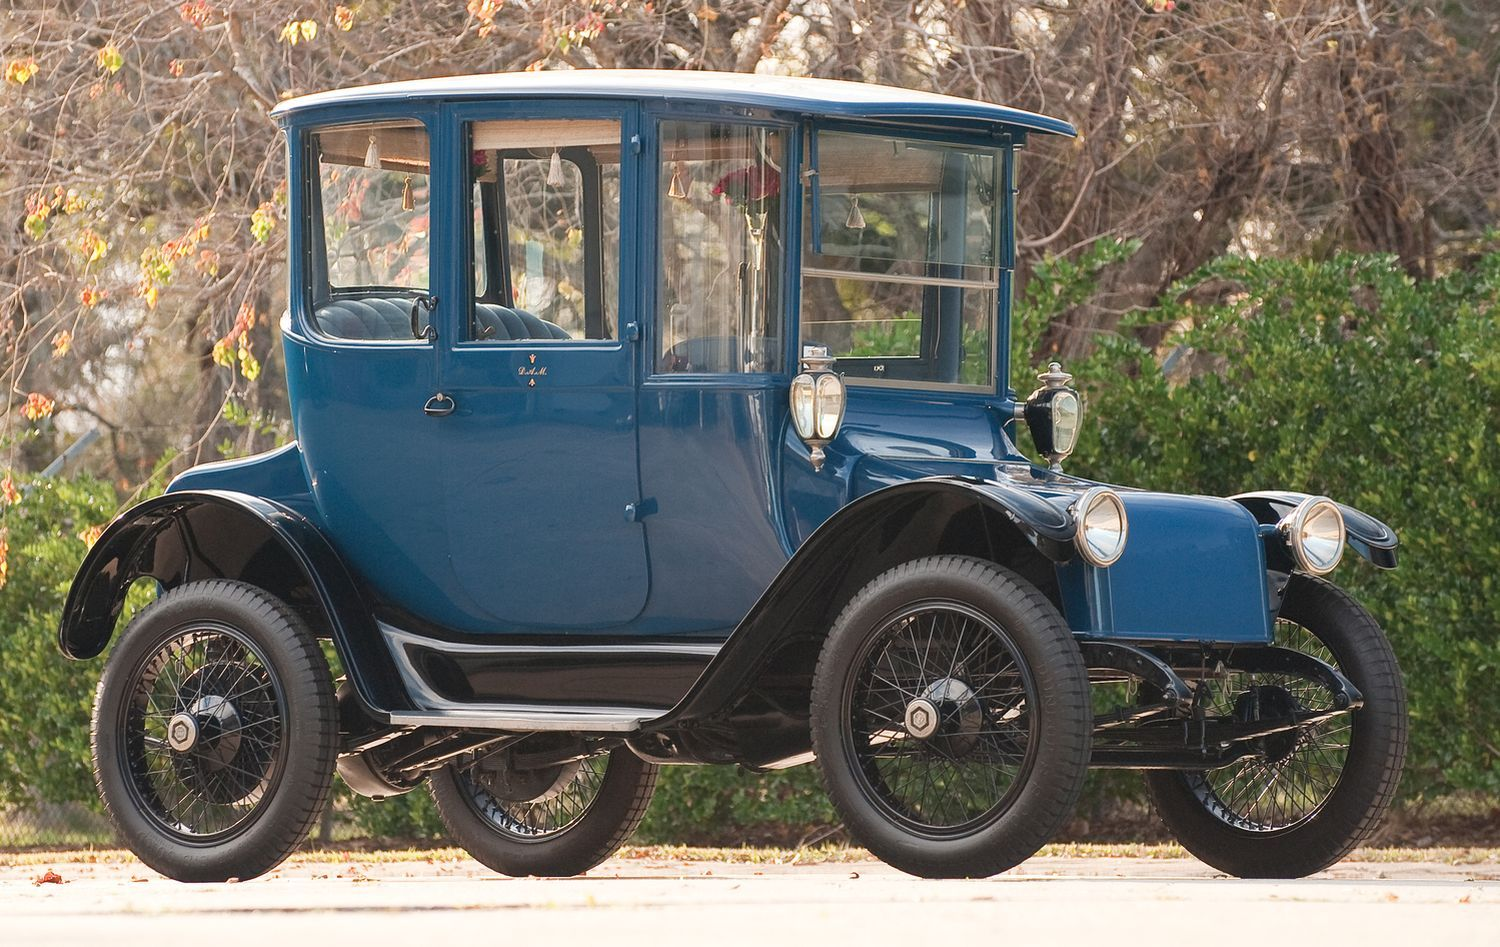 Detroit Electric Brougham Photo By Darin Schnabel Courtesy